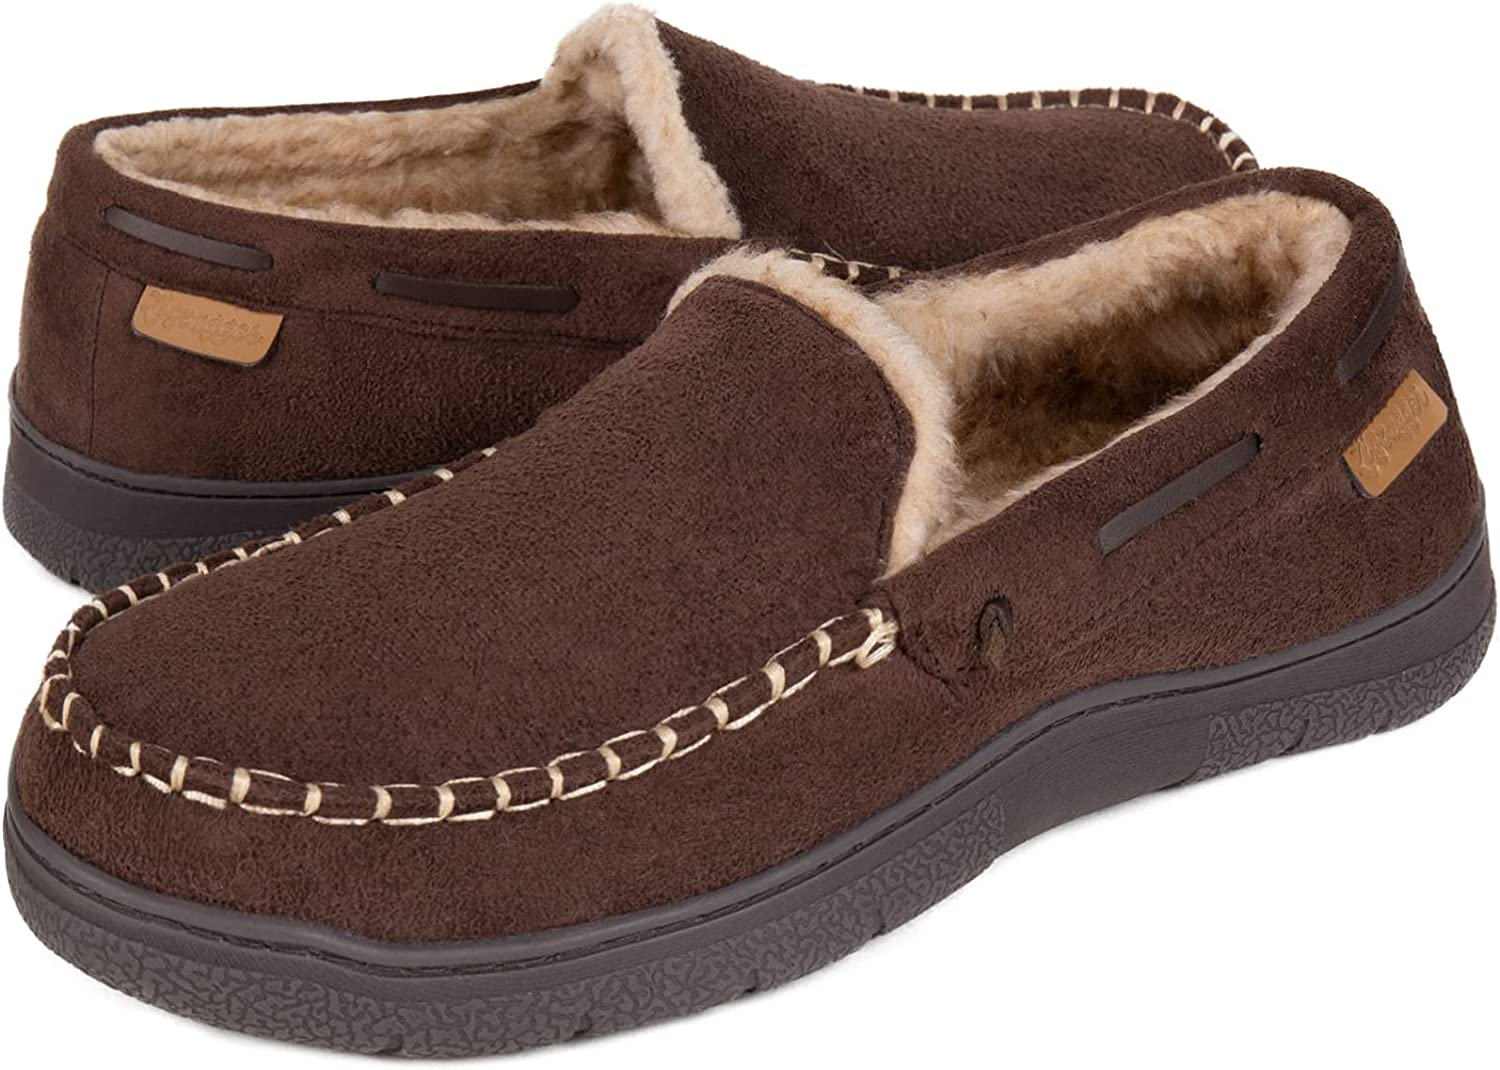 Zigzagger Men's Moccasin Fort Worth Mall Slippers Foam Memory House Popular shop is the lowest price challenge Shoes